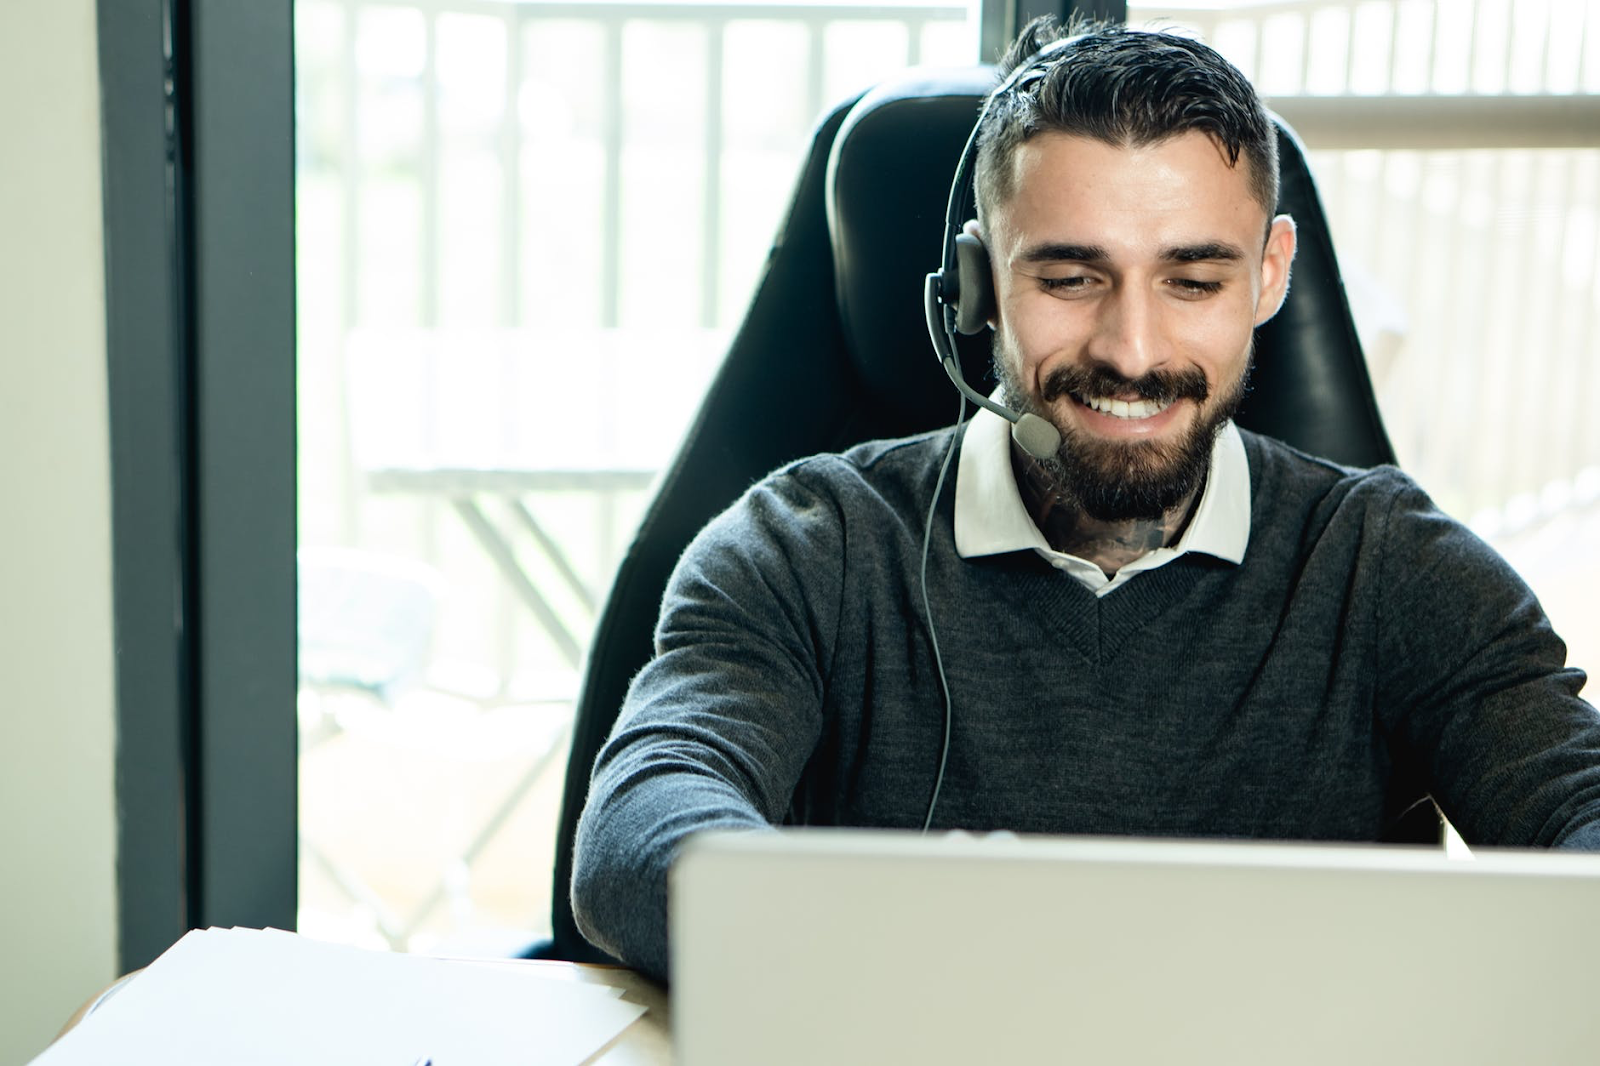 A simple follow up can improve customer support ratings.